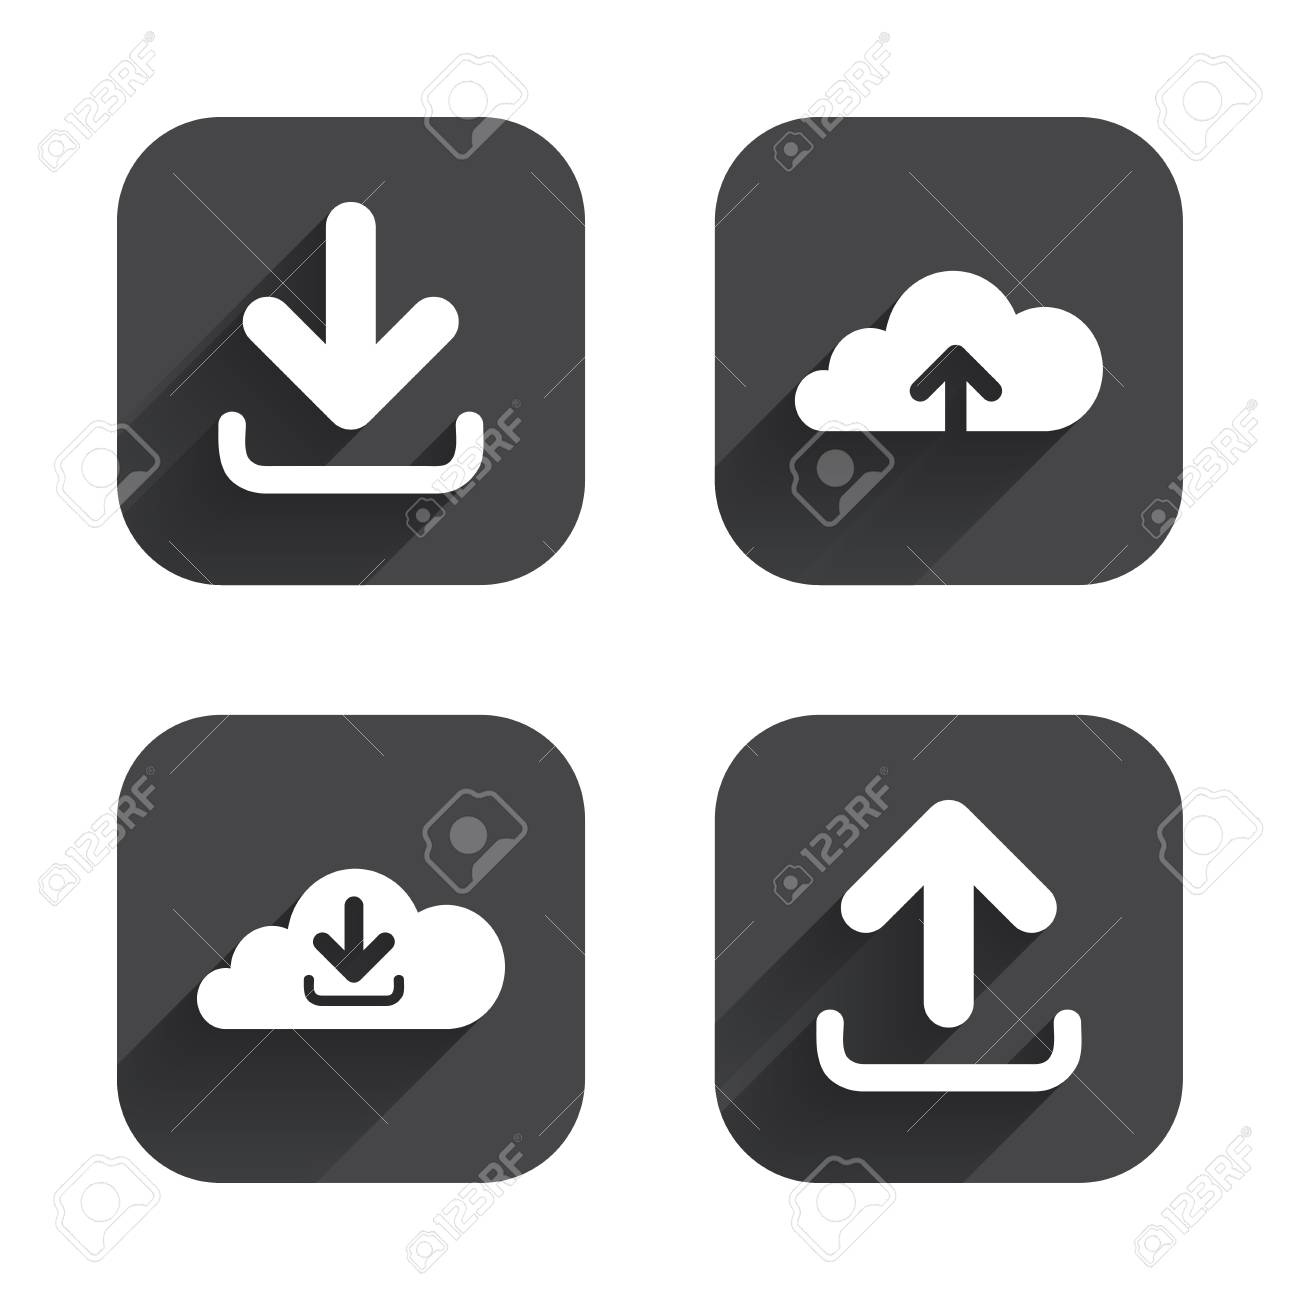 Download Now Button Clipart icons